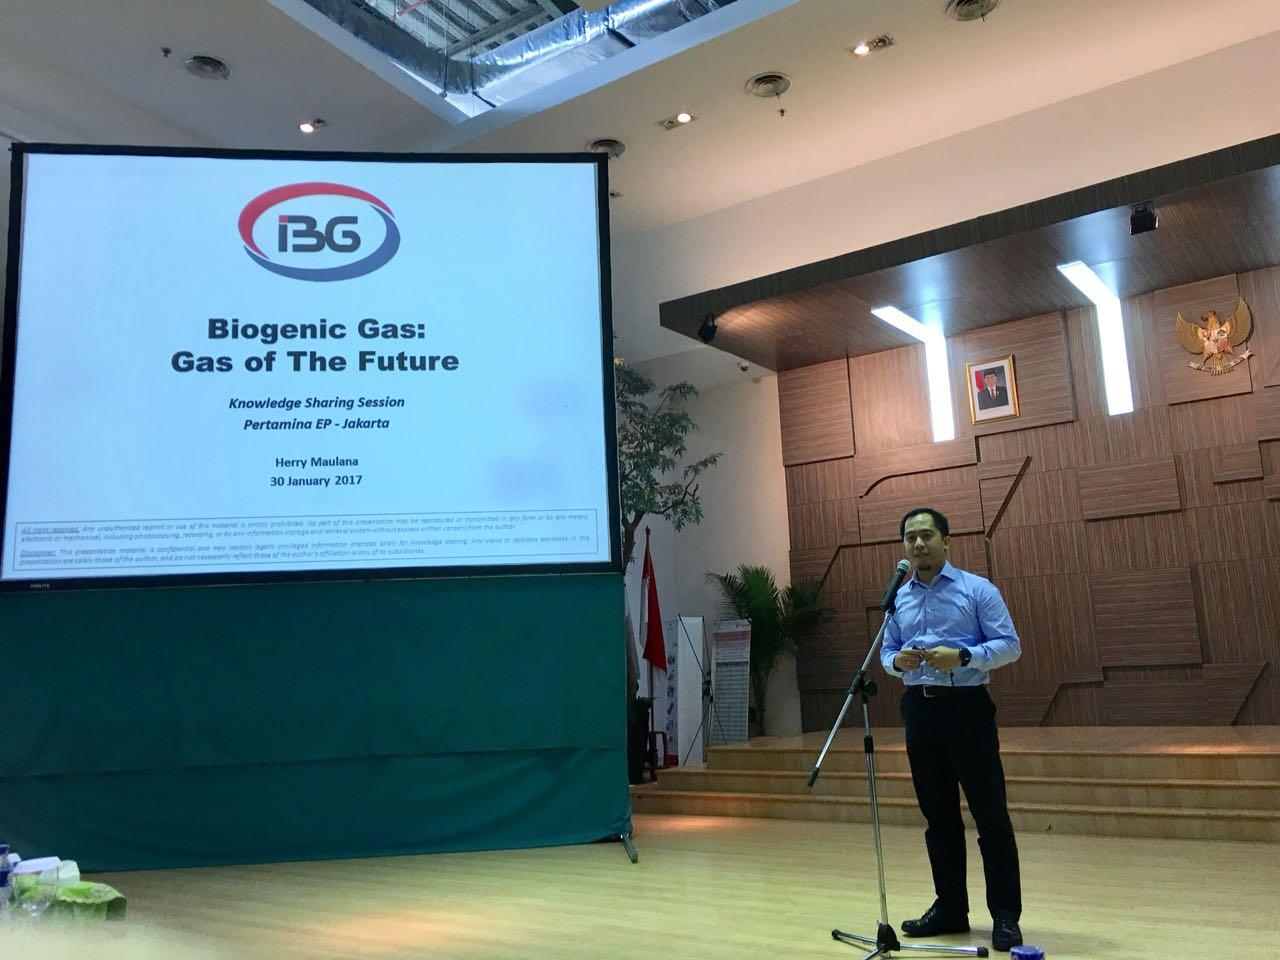 BIOGENIC GAS: GAS OF THE FUTURE 2017